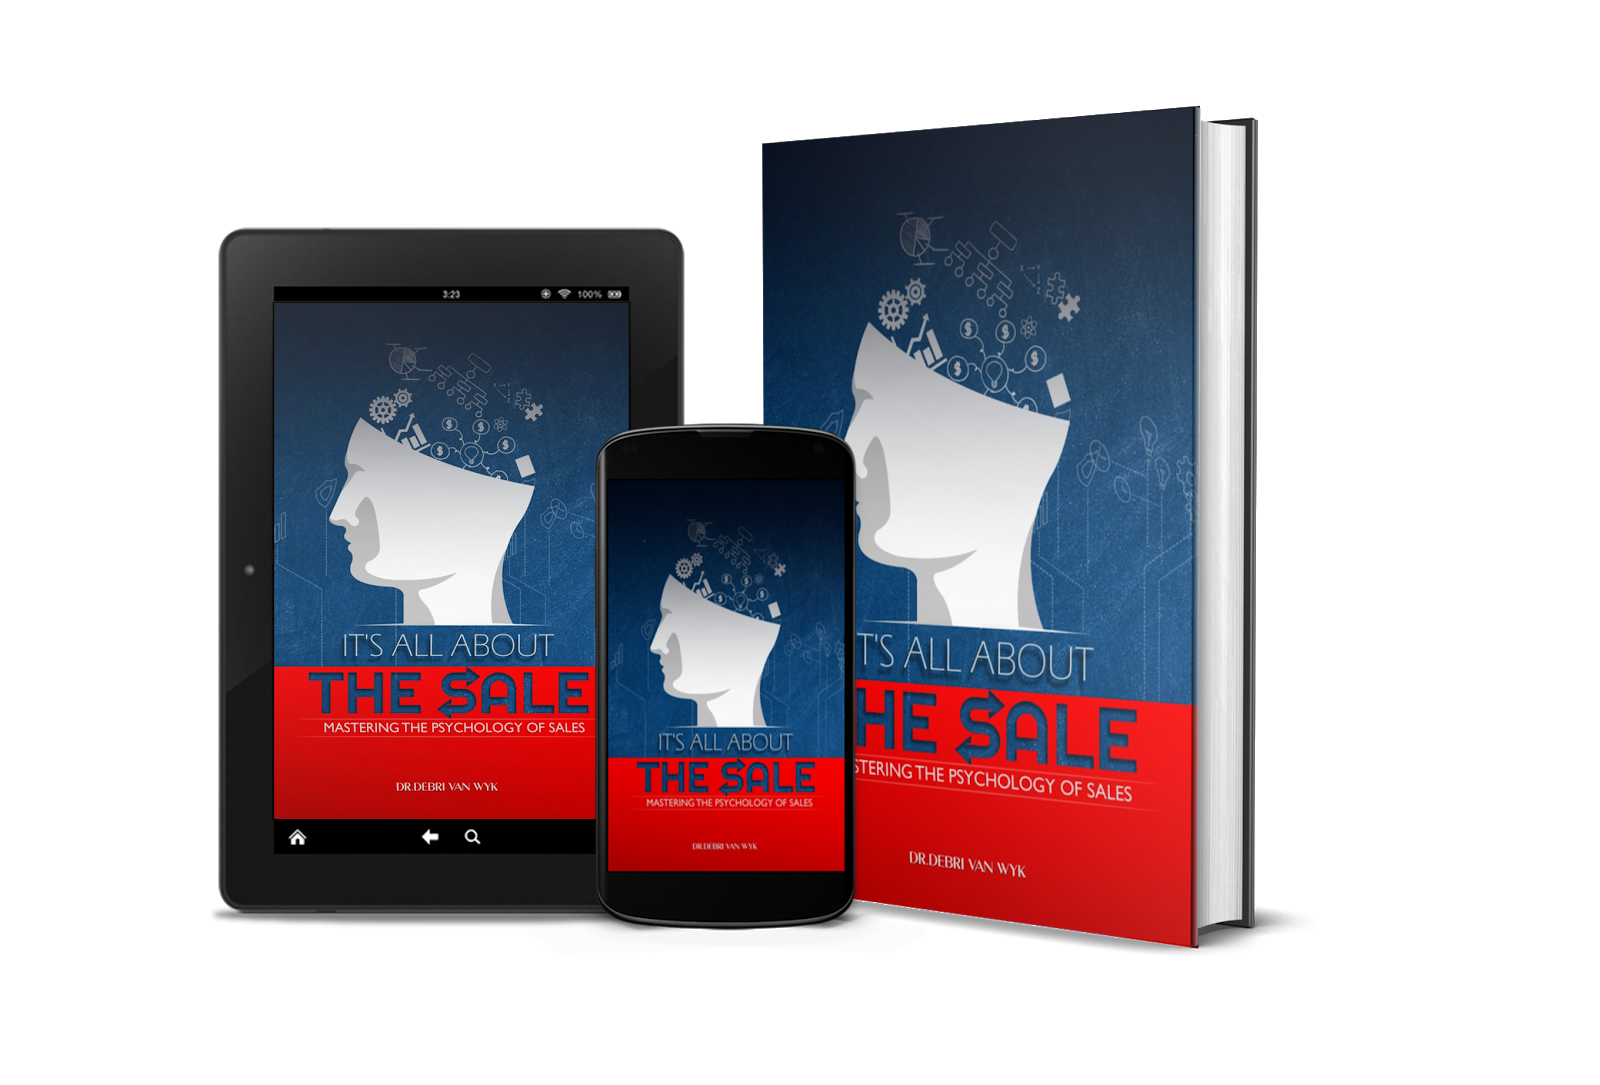 It's all about the sale: Mastering the psychology of sales